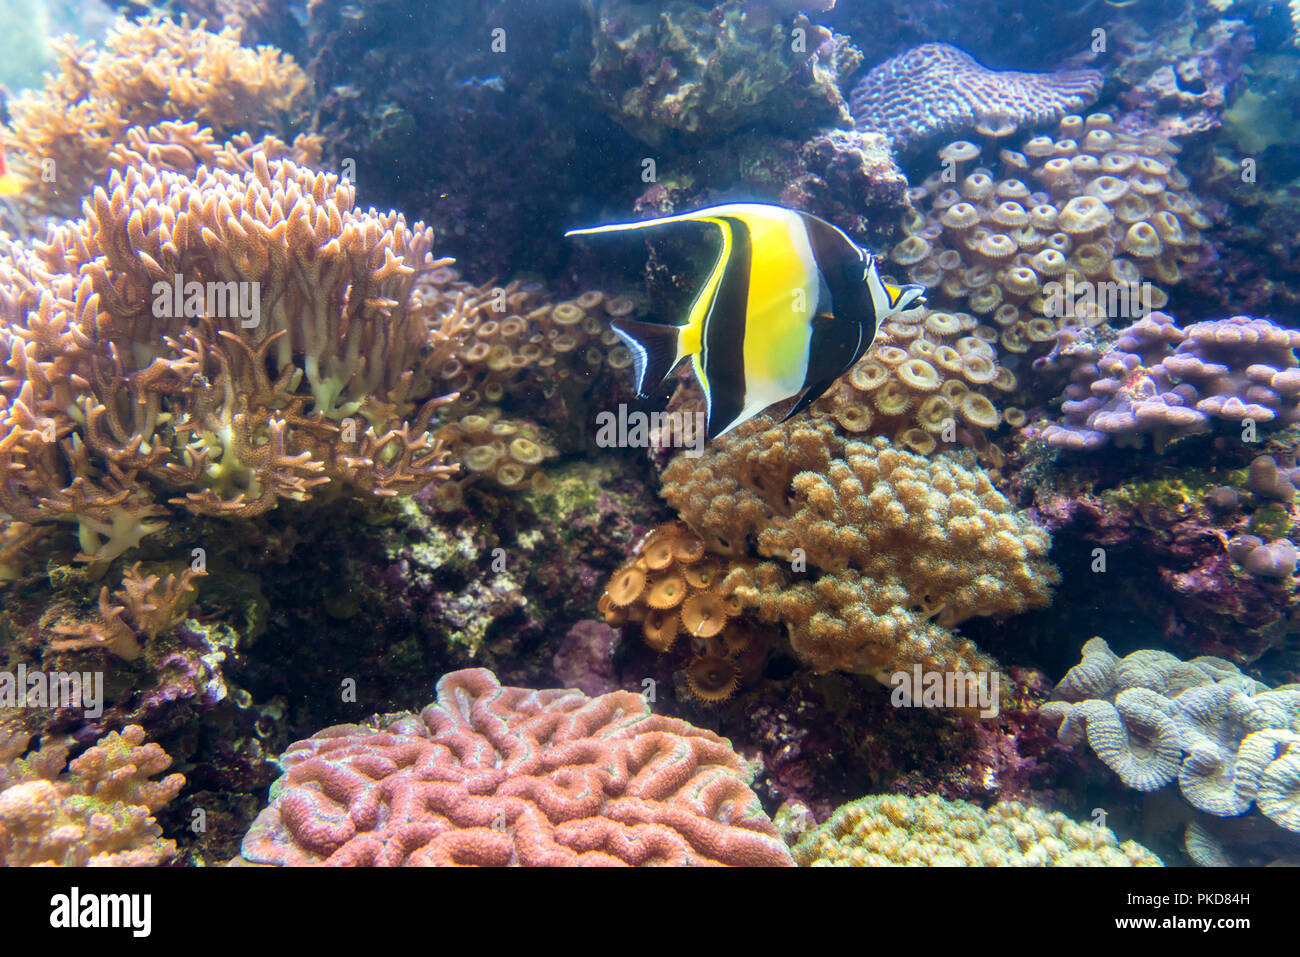 Wonderful and beautiful underwater world with corals and tropical fish. - Stock Image